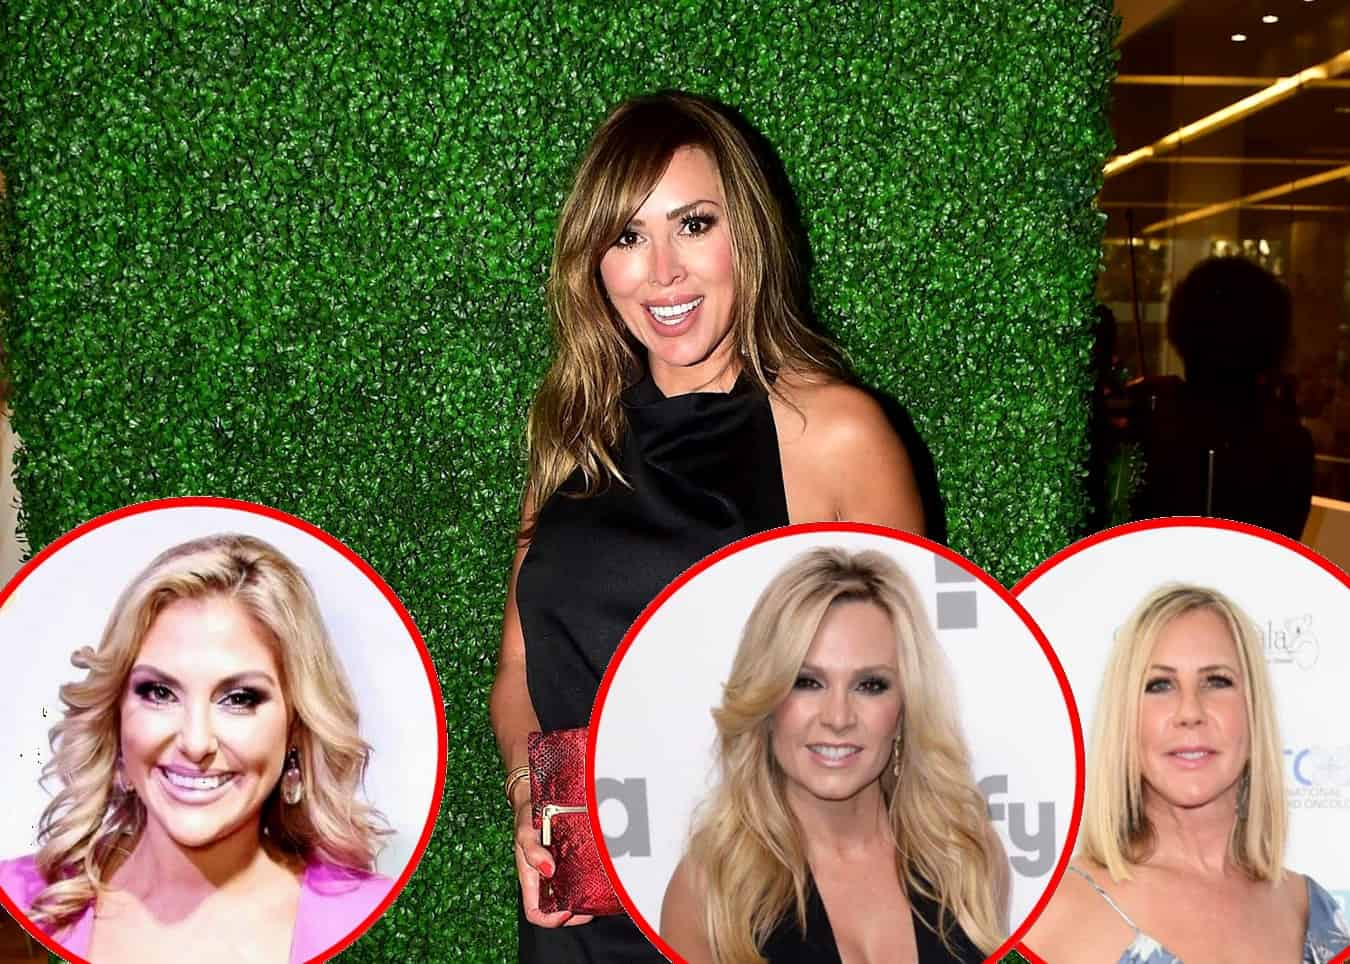 "RHOC Kelly Dodd Slams Gina Kirschenheiter as a ""Follower"" and Explains Why Tamra Judge Plays Both Sides, Plus She Sounds Off on Vicki -- See the Scathing Tweets!"